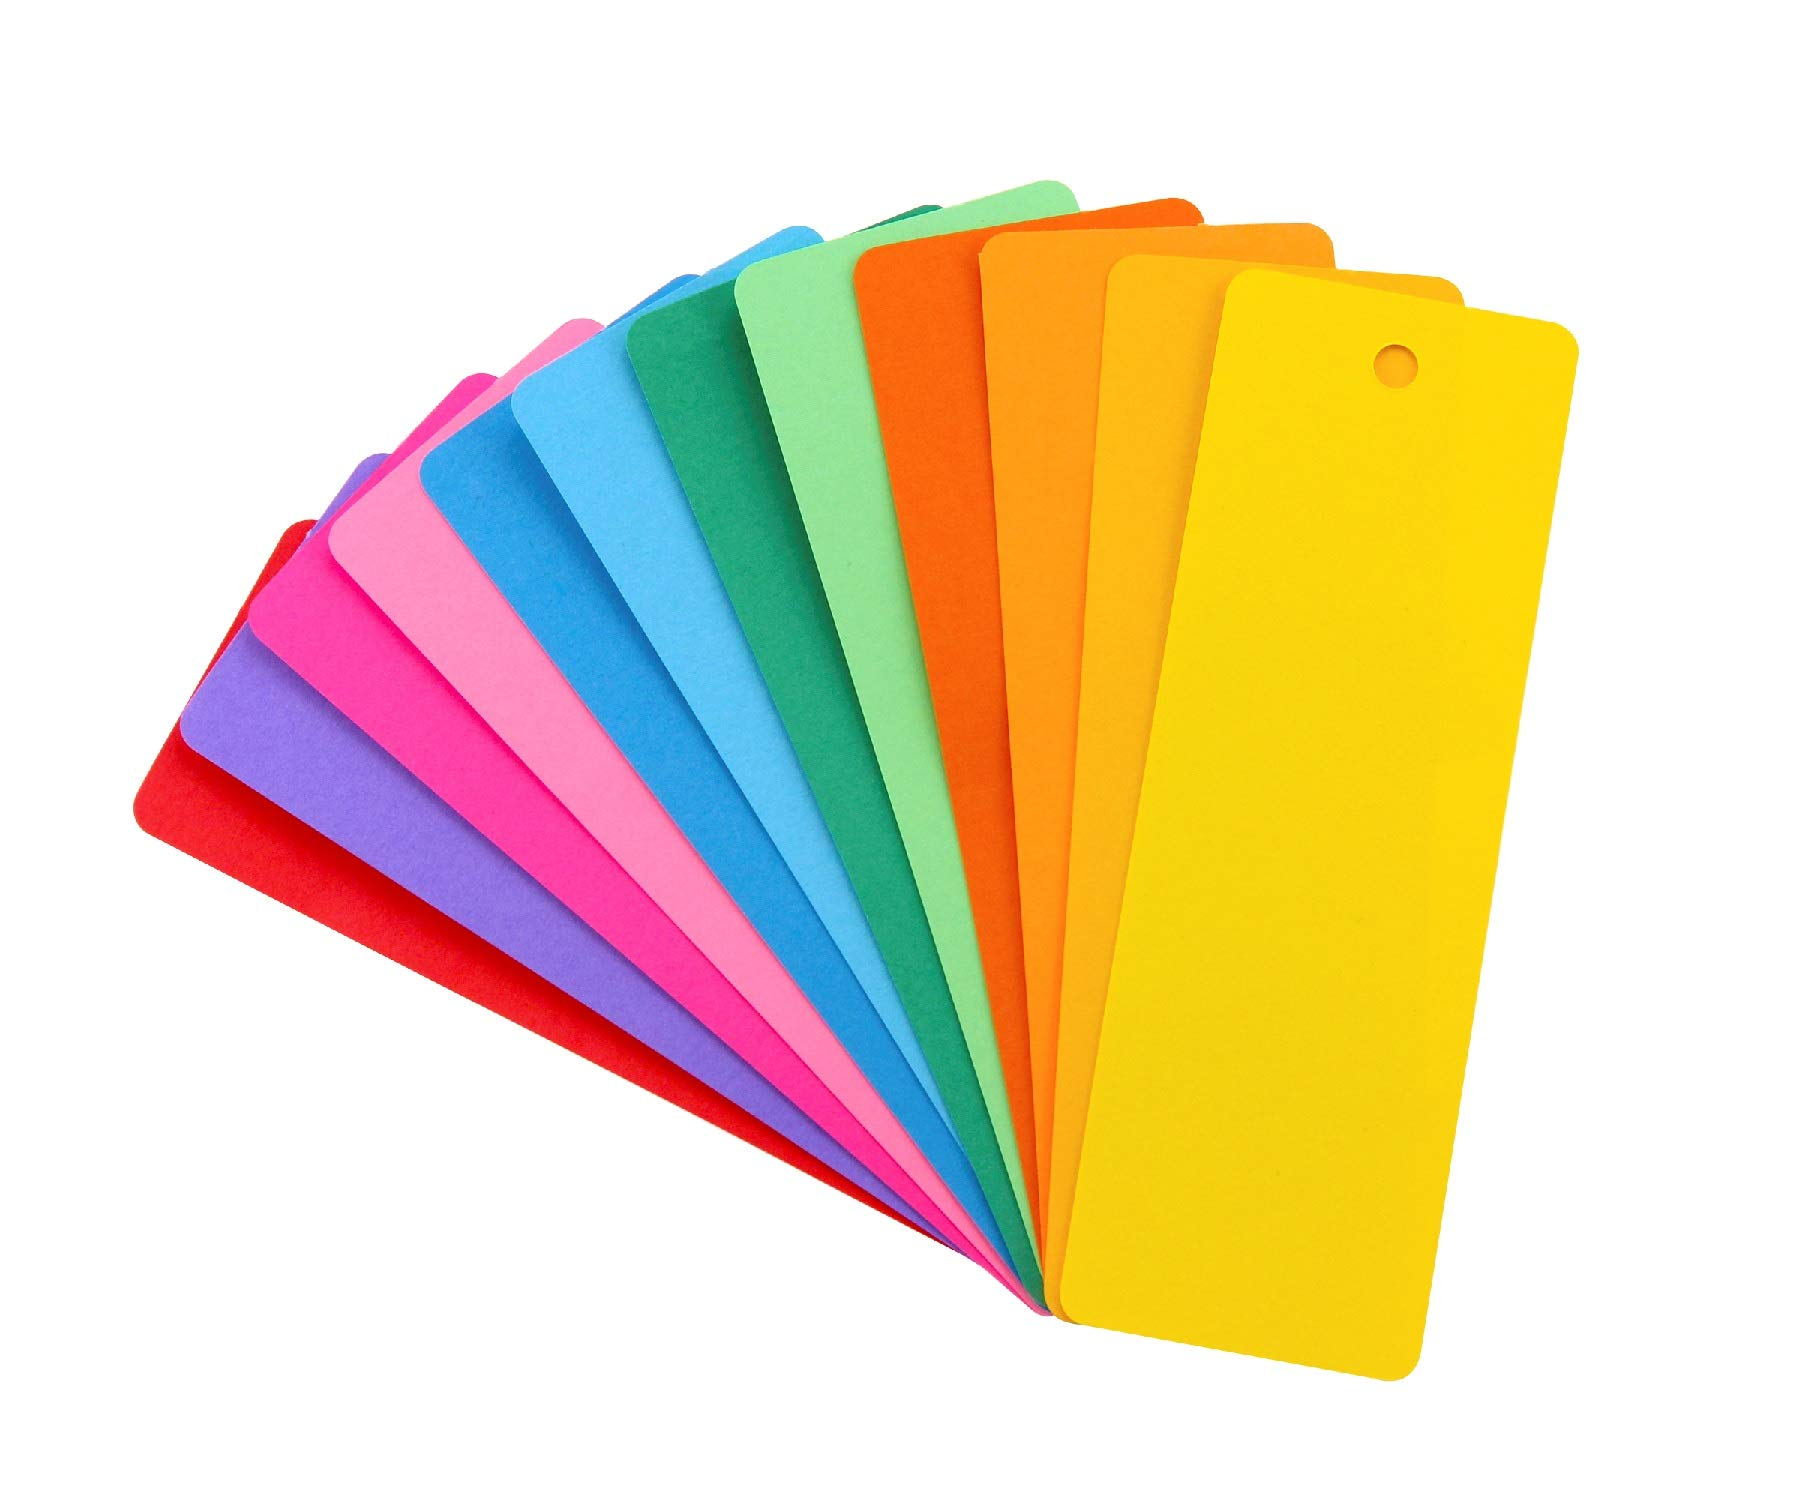 Hygloss Products Bright Bookmarks - Fun to Personalize - 12 Assorted Vibrant Colors - Cardstock Bookmarks - Value Pack - 500 Pack by Hygloss